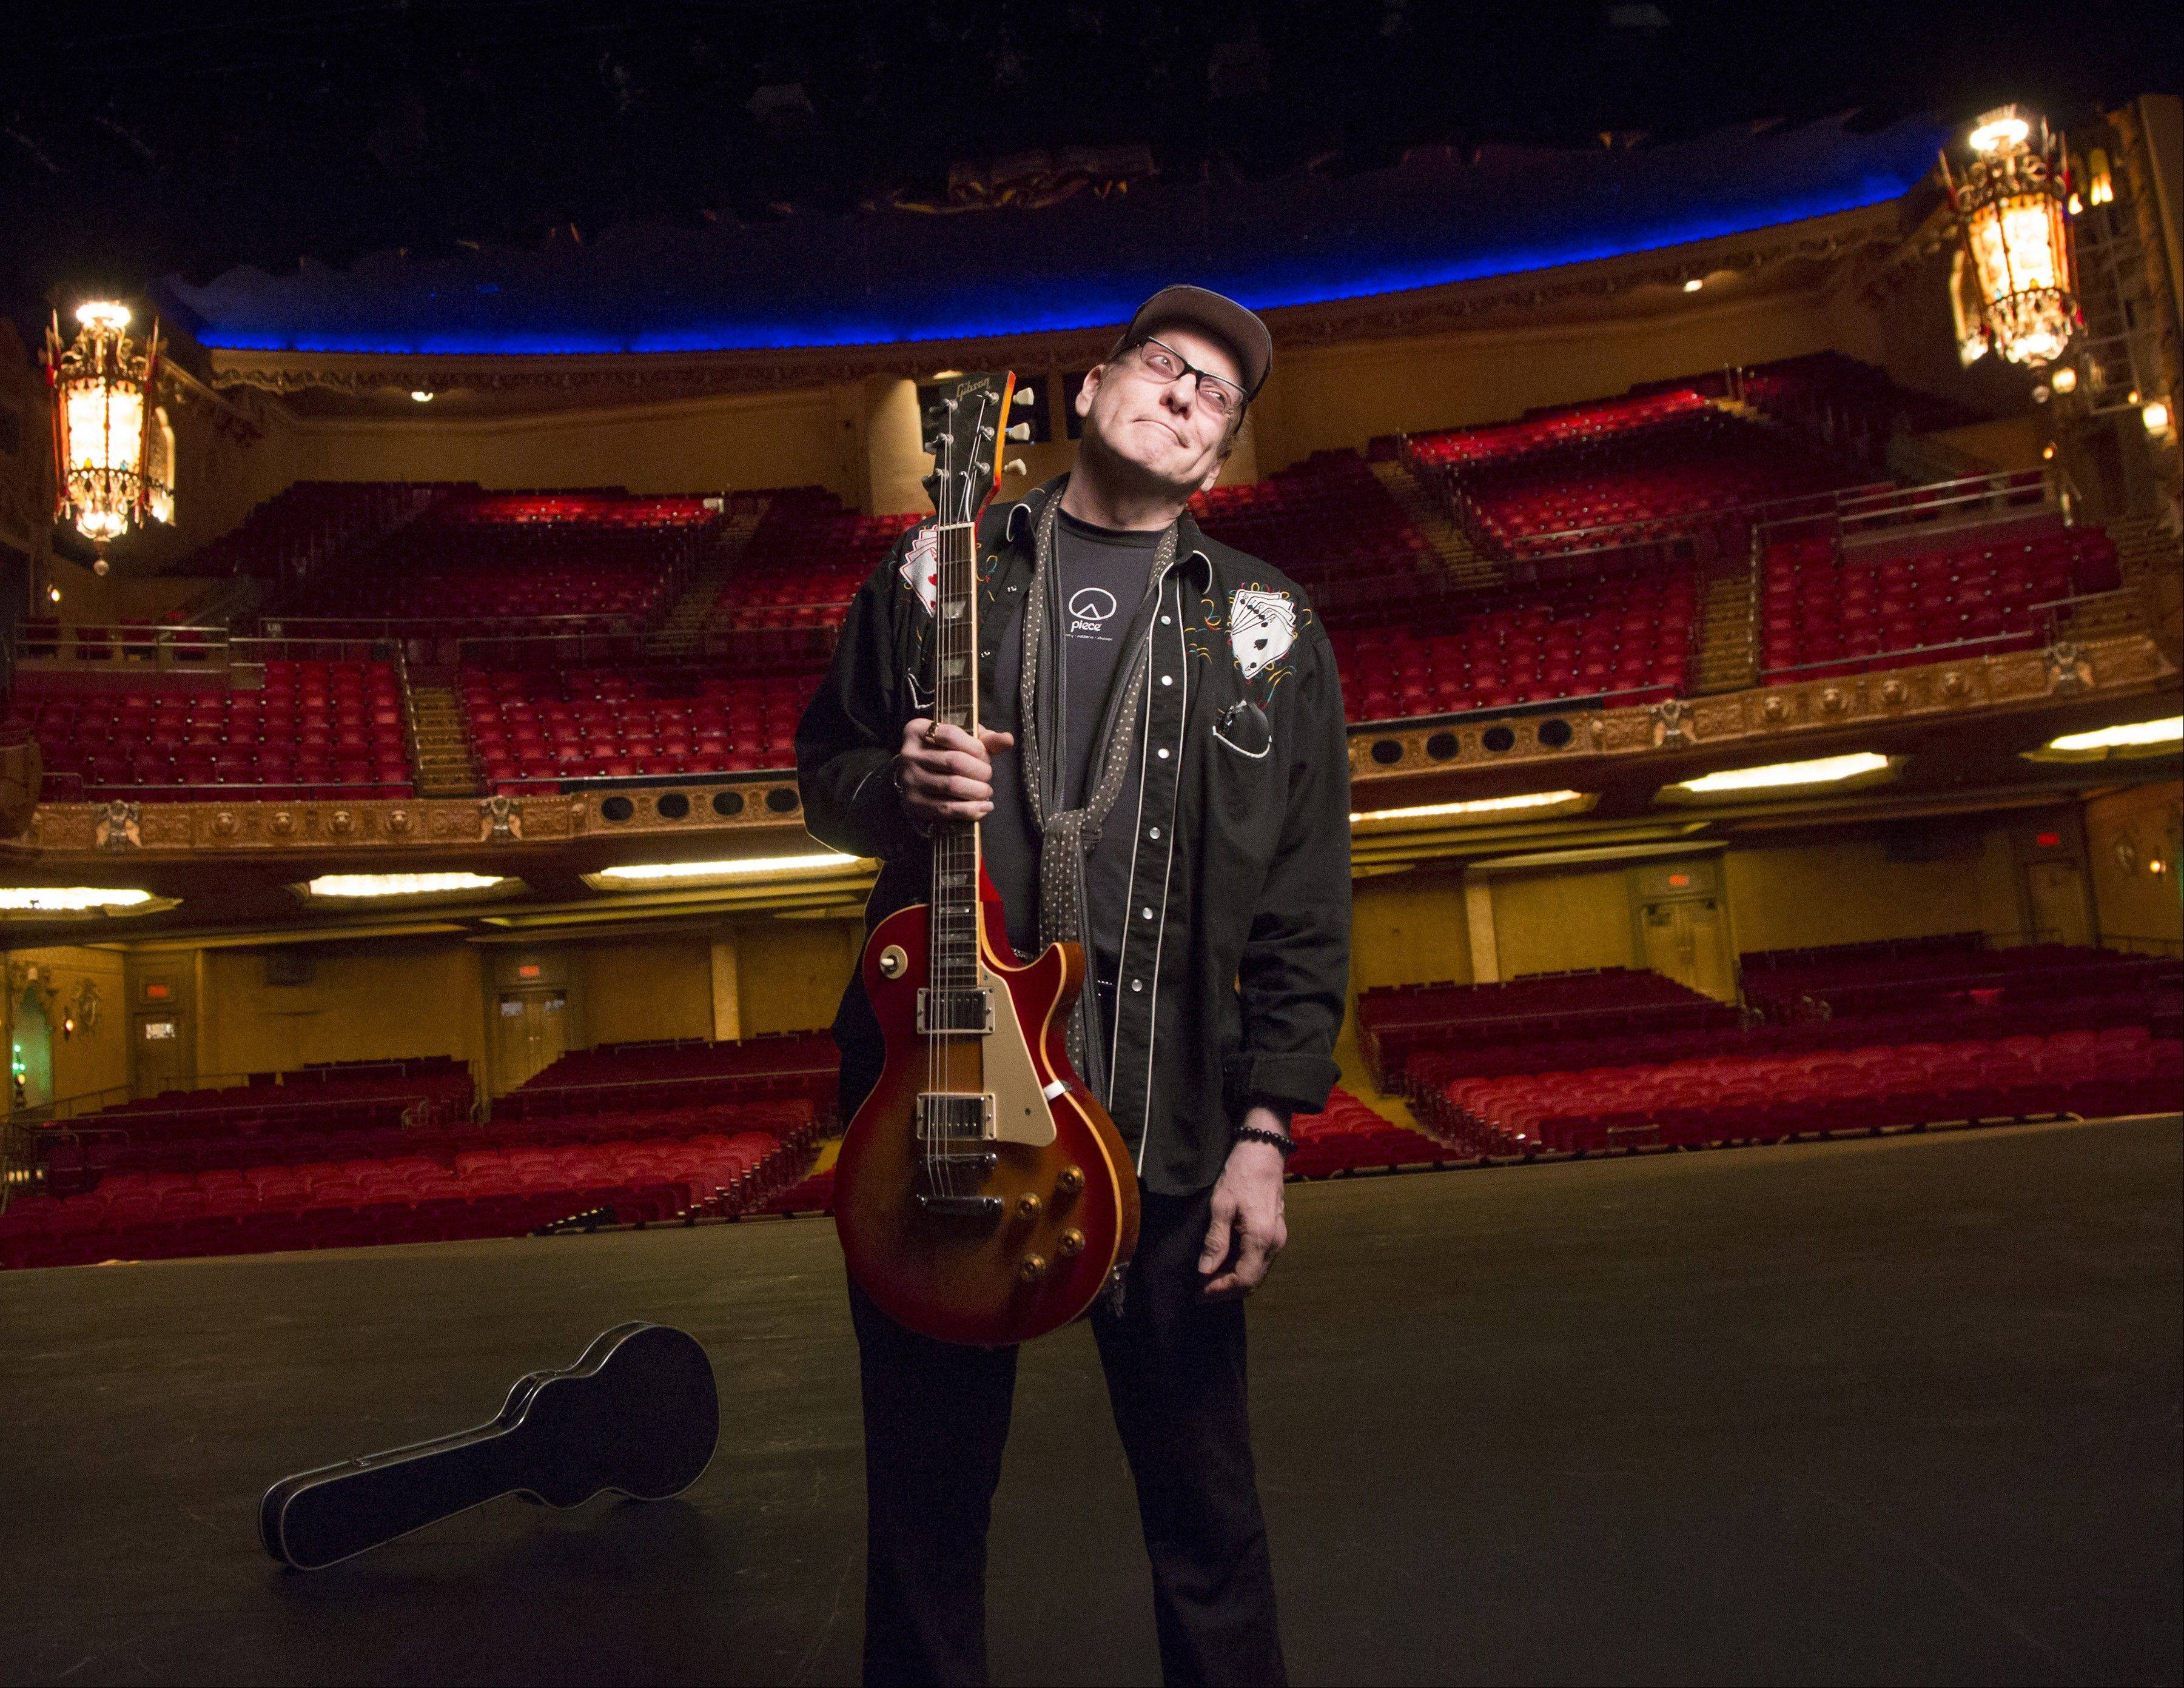 Rick Nielsen and his band, Cheap Trick, have performed numerous times at Rockford's Coronado Performing Arts Center.